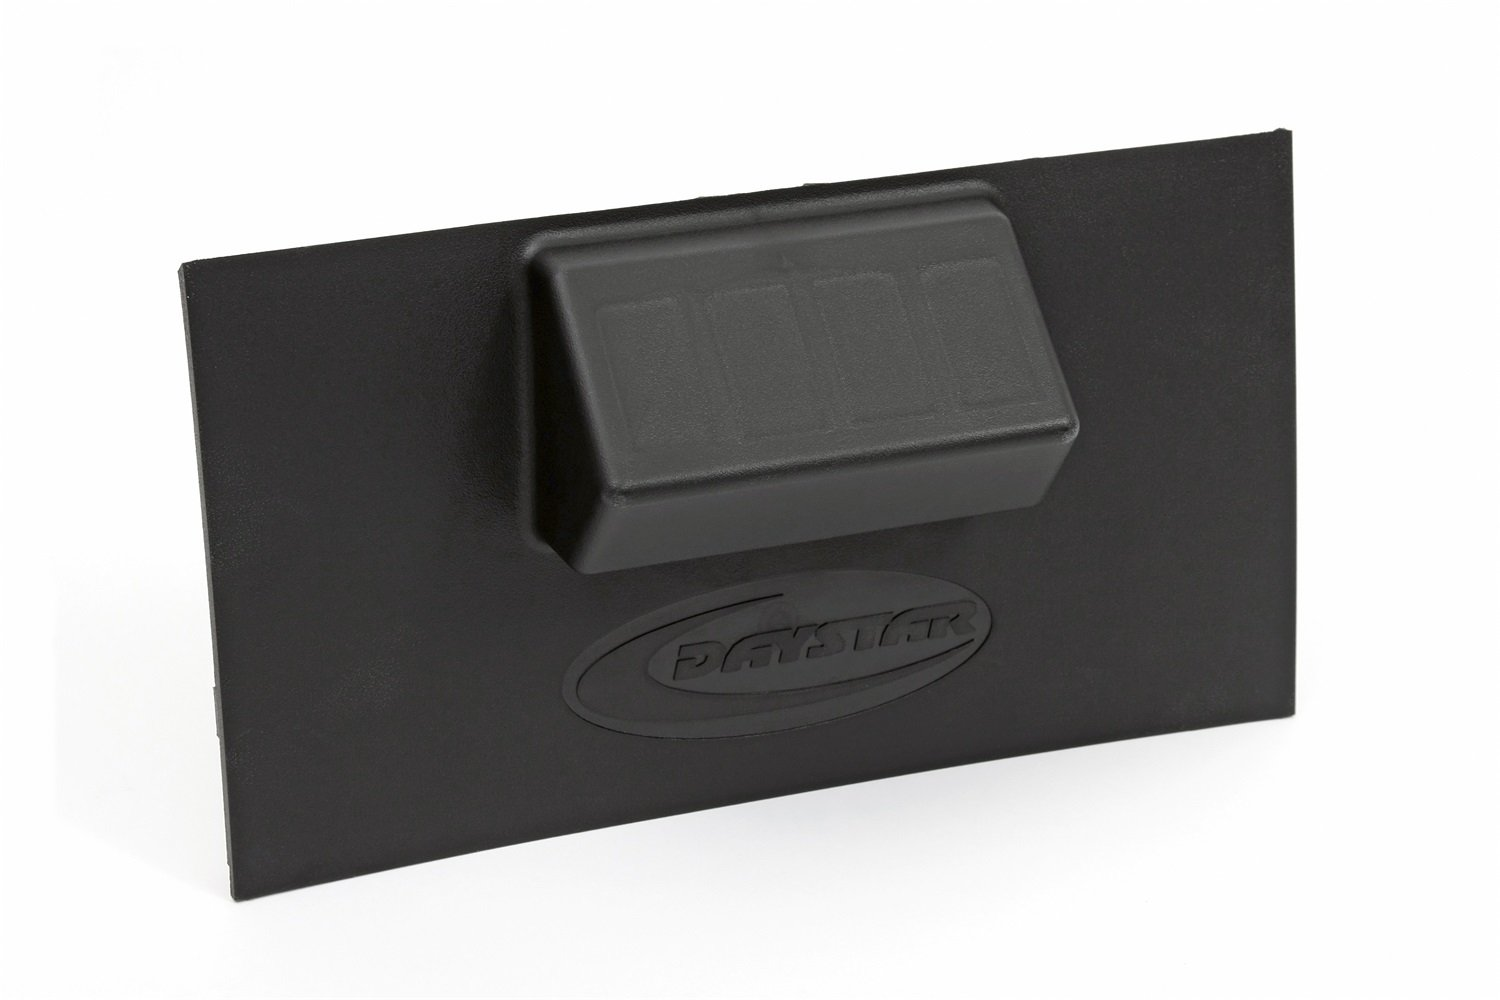 Daystar, Jeep JK Wrangler Lower switch panel that will accommodate 1 to 4 rocker style switches, fits 2007 to 2010 2/4WD, KJ71030, Made in America, Black